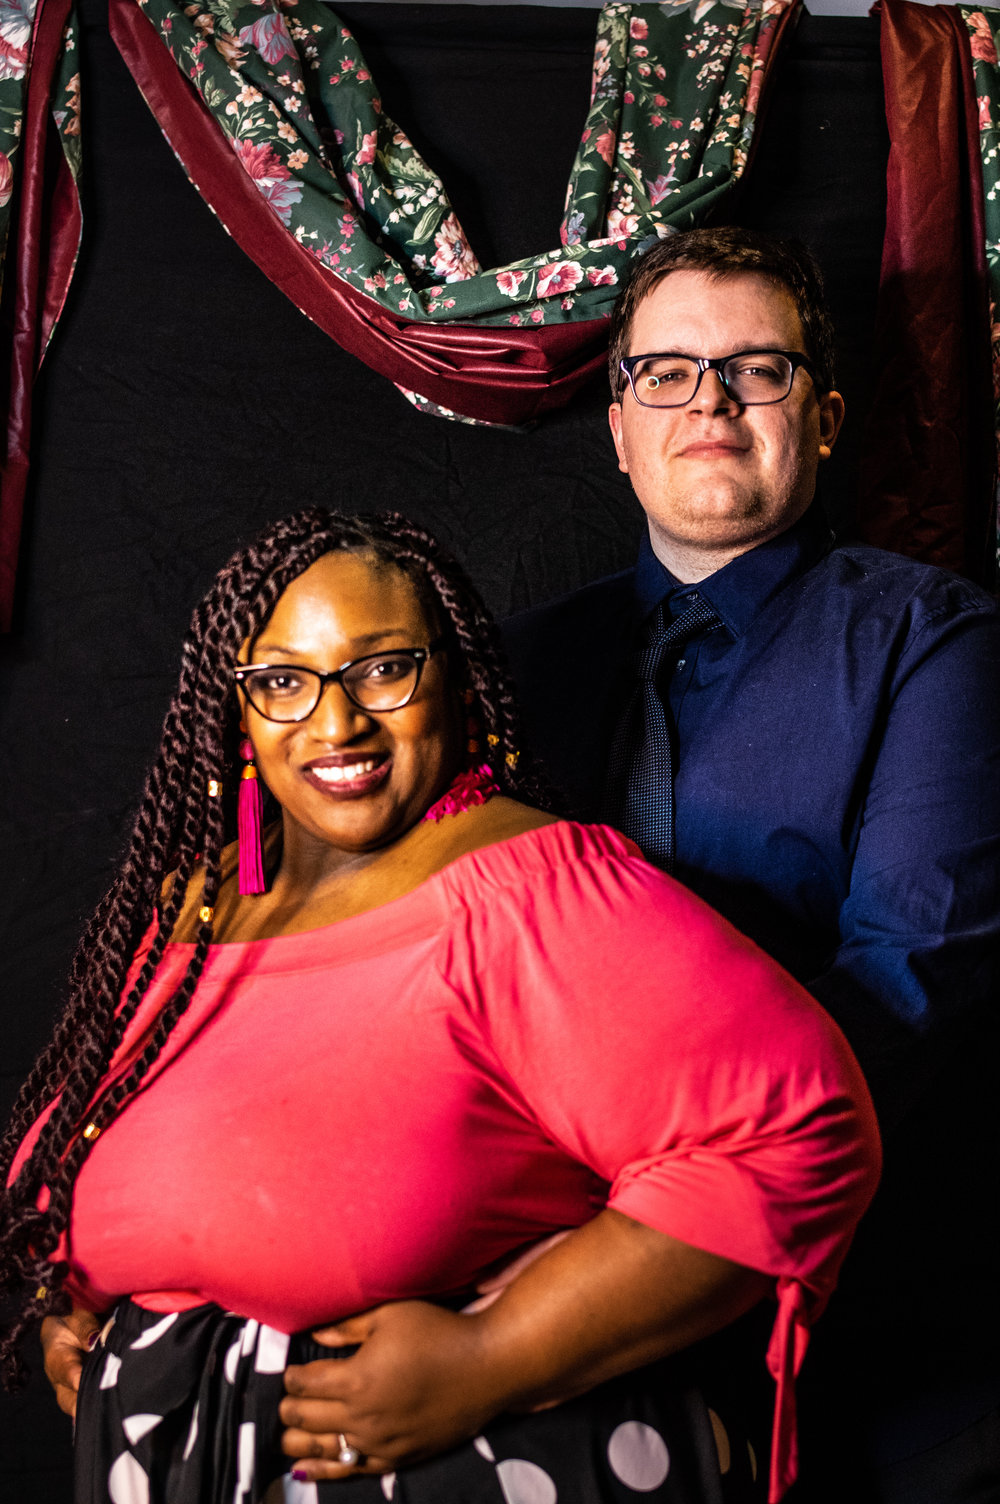 Friends, bandmates, and lovers of all kinds posed for photos at the DIY Prom.